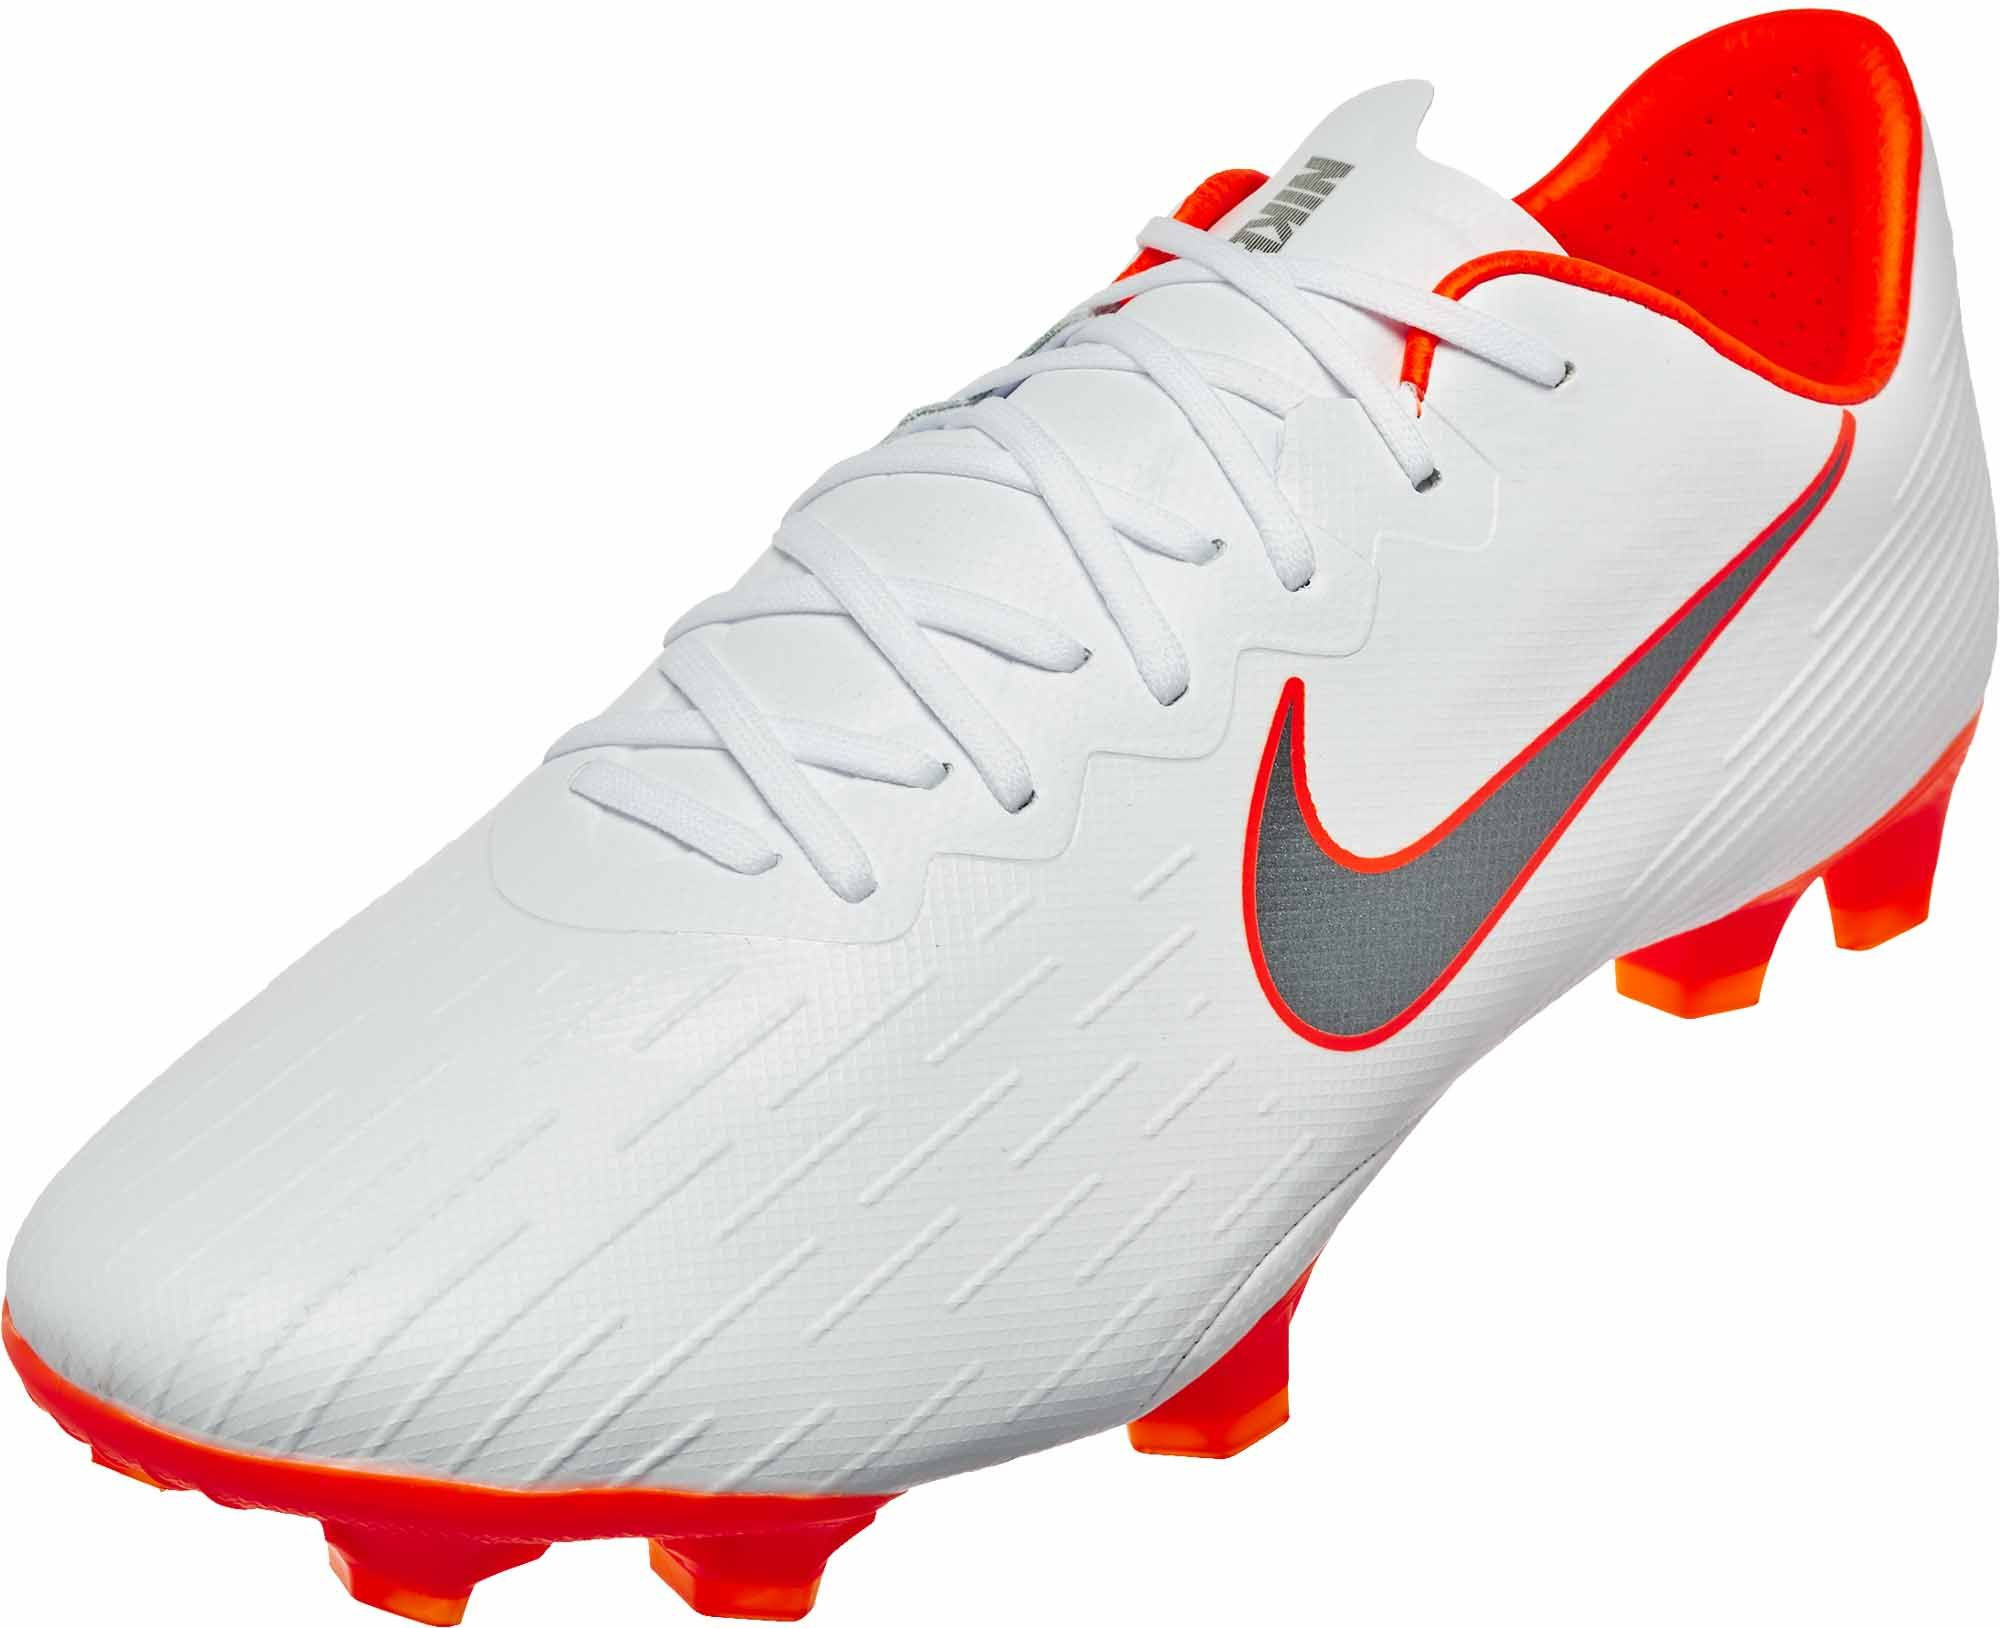 wholesale dealer f8292 fac7c Just Do It pack Nike Mercurial Vapor 12 Pro. Buy yours from SoccerPro.